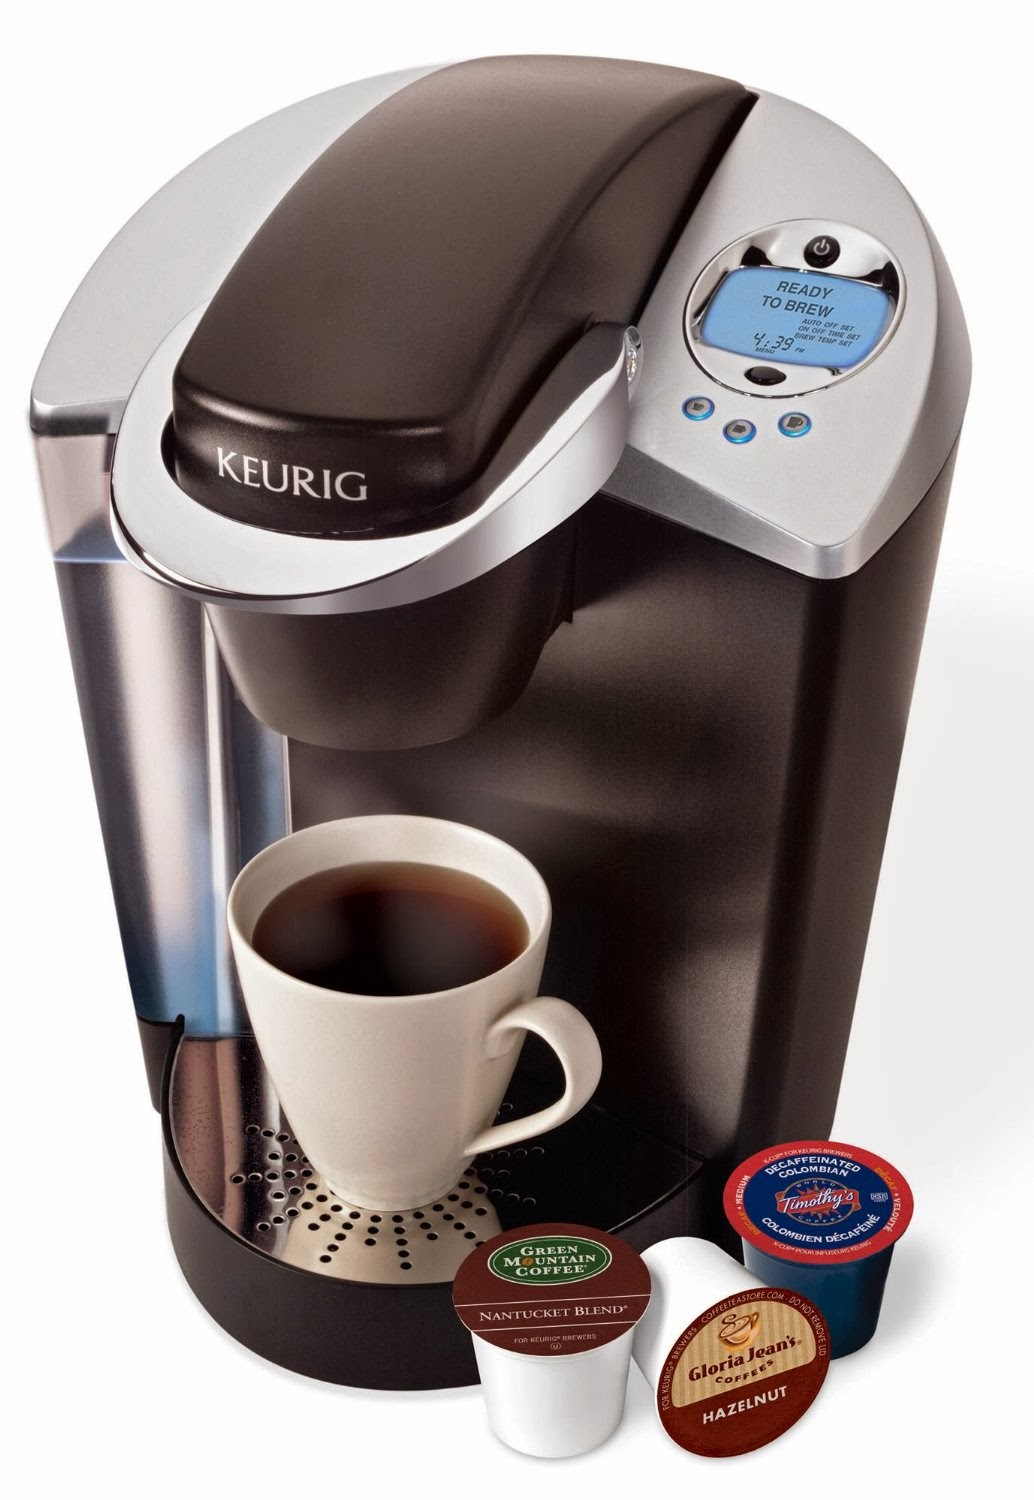 Best-Rated Single Serve Coffee Maker Machines For Office Use - Reviews 2014 A Listly List